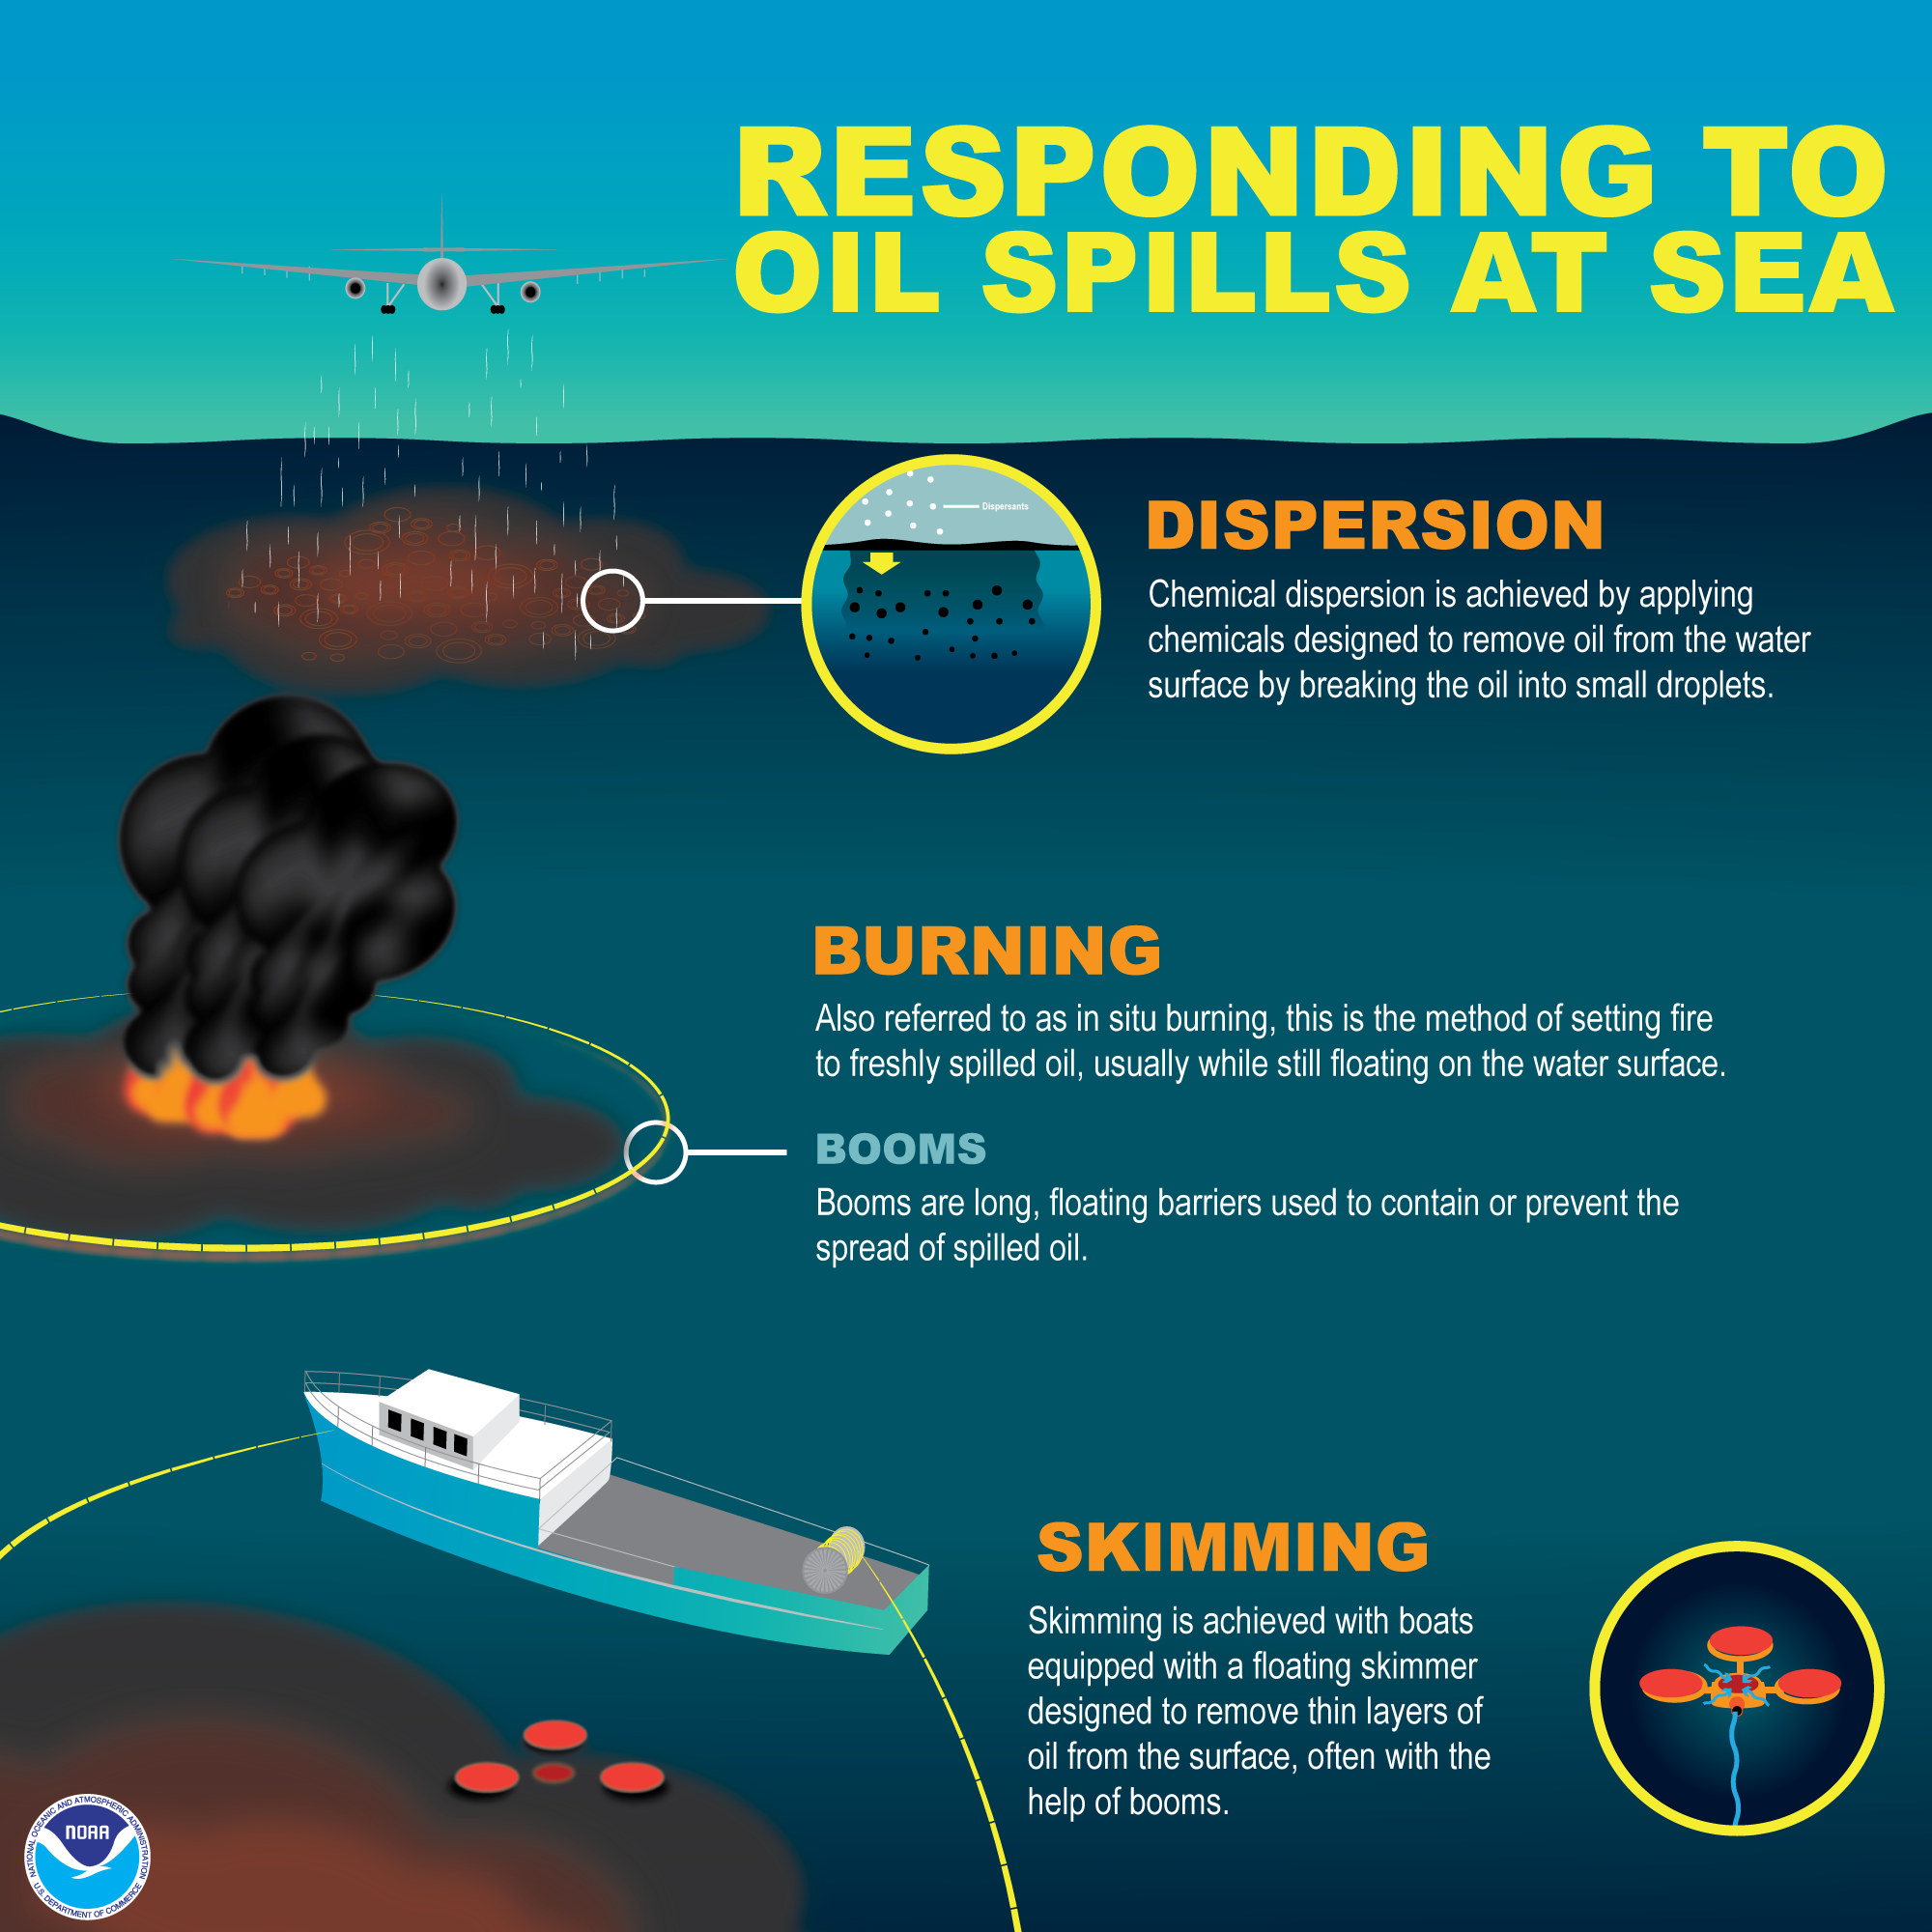 How Do Oil Spills out at Sea Typically Get Cleaned Up